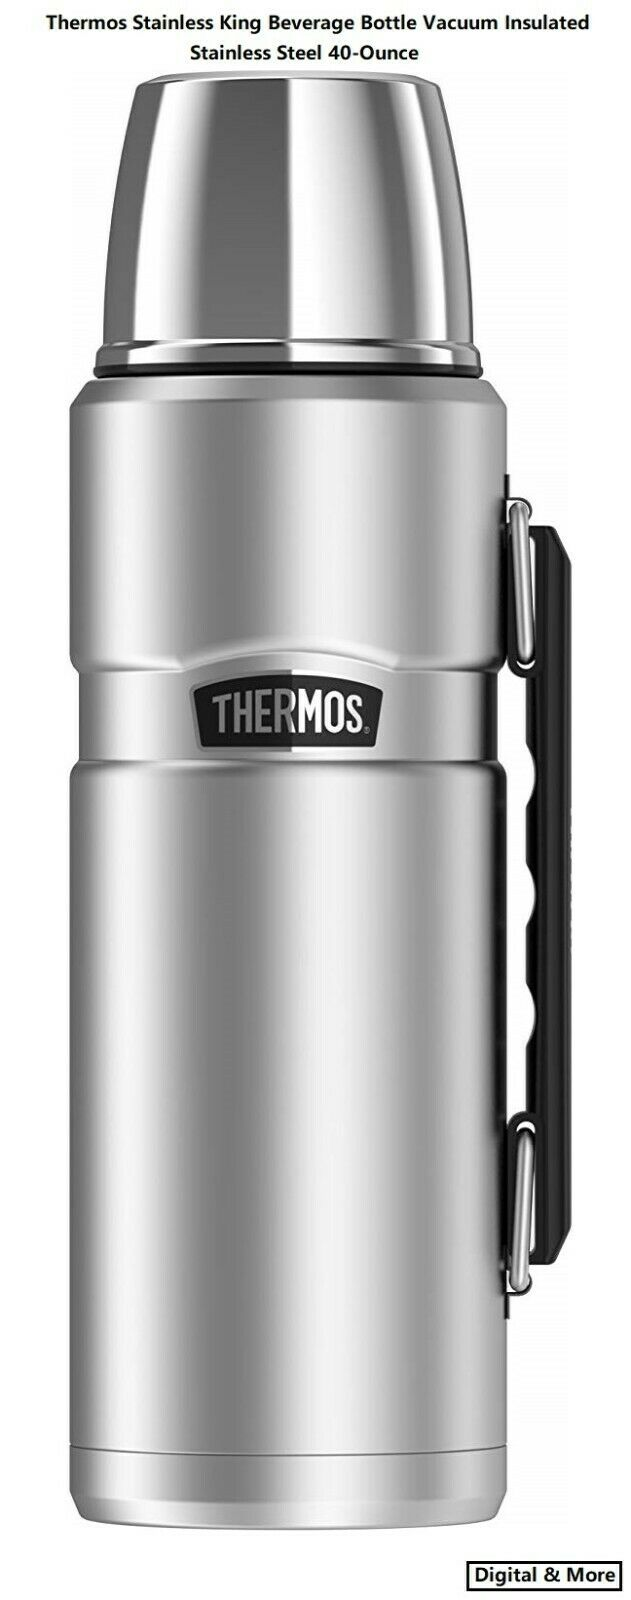 Thermos Stainless King Beverage Bottle Vacuum Insulated Stai